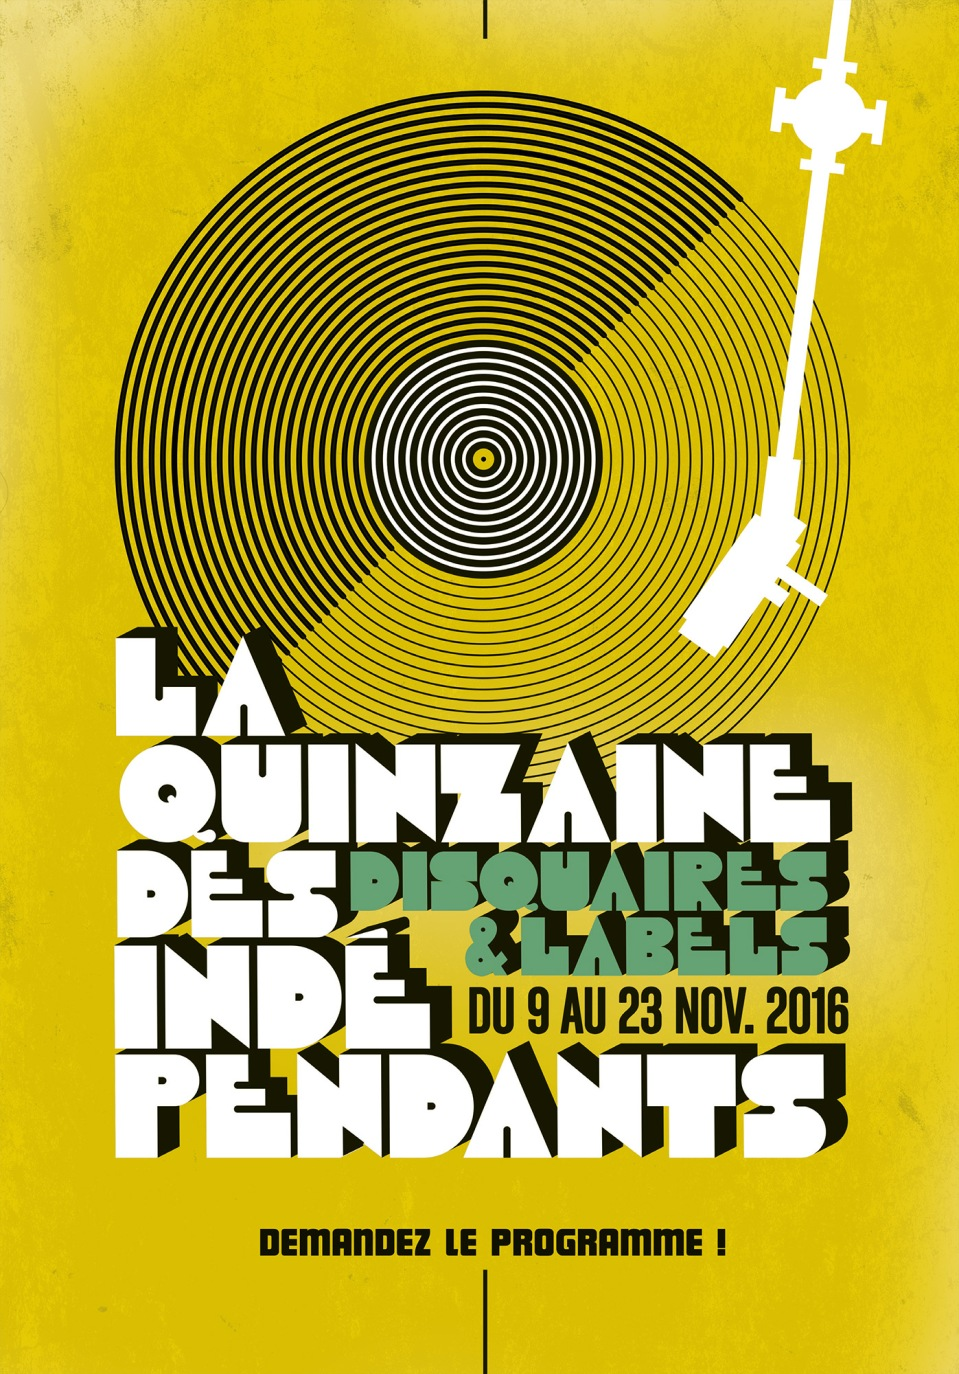 La Quinzaine des Indépendants nov 2016 - Ave the Sound! - 1